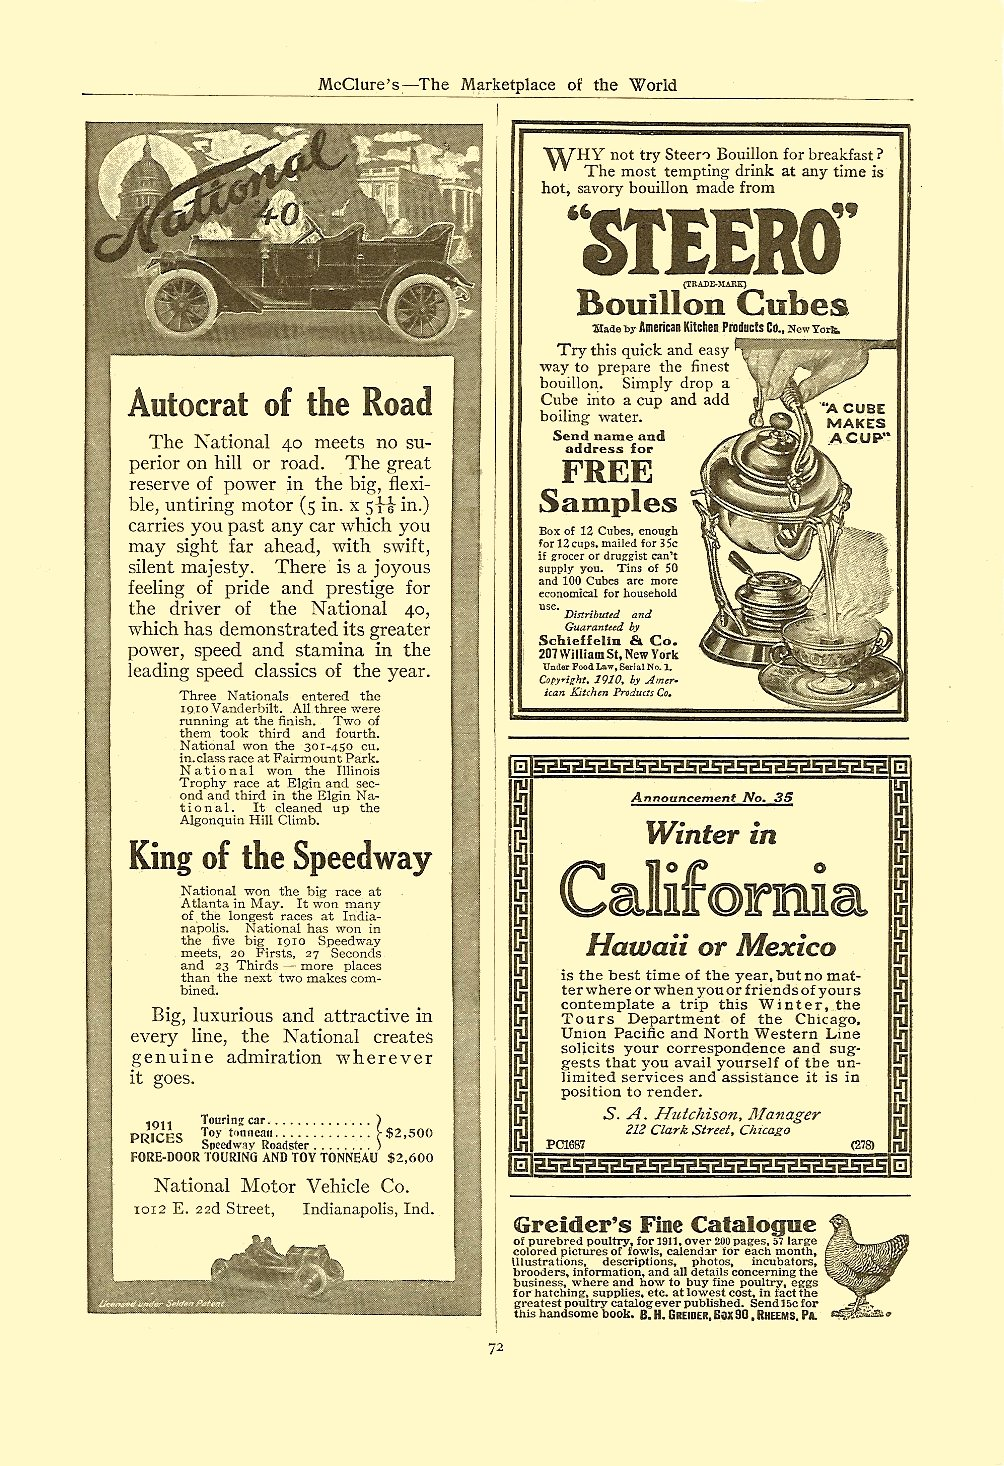 1911 1 40 Autocrat of the Road January 1911 McClure's – The Marketplace of the World 6.75″x9.75″, AD = 2.75″x8″ page 72